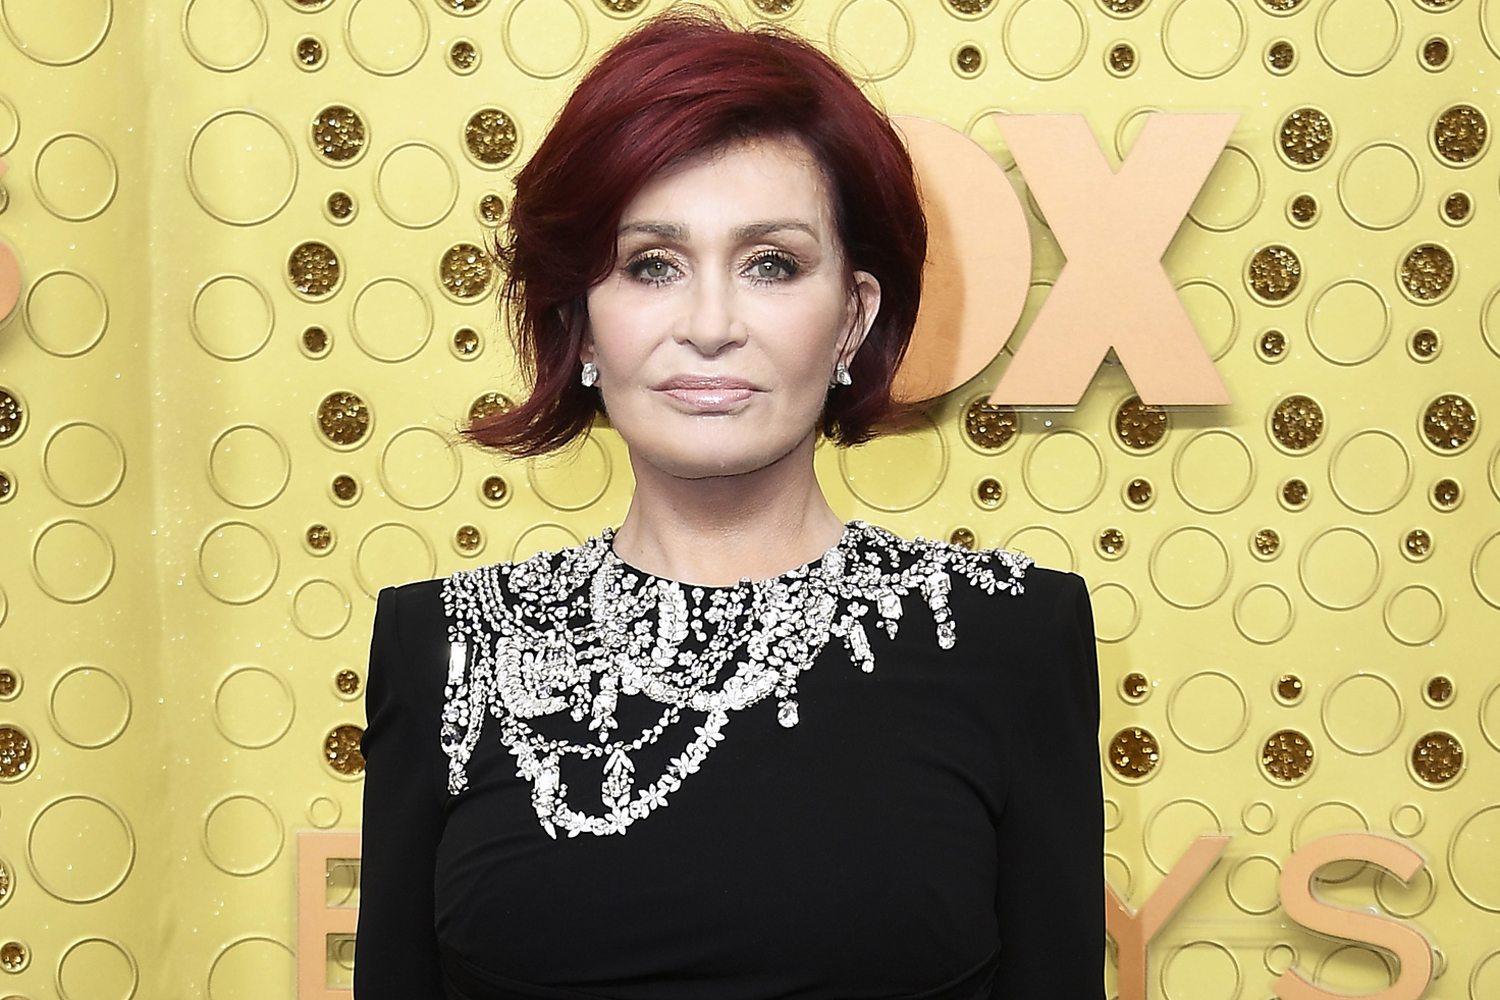 Sharon Osbourne Speaks Out After Exiting The Talk Following Controversy: 'I'm Angry, I'm Hurt'